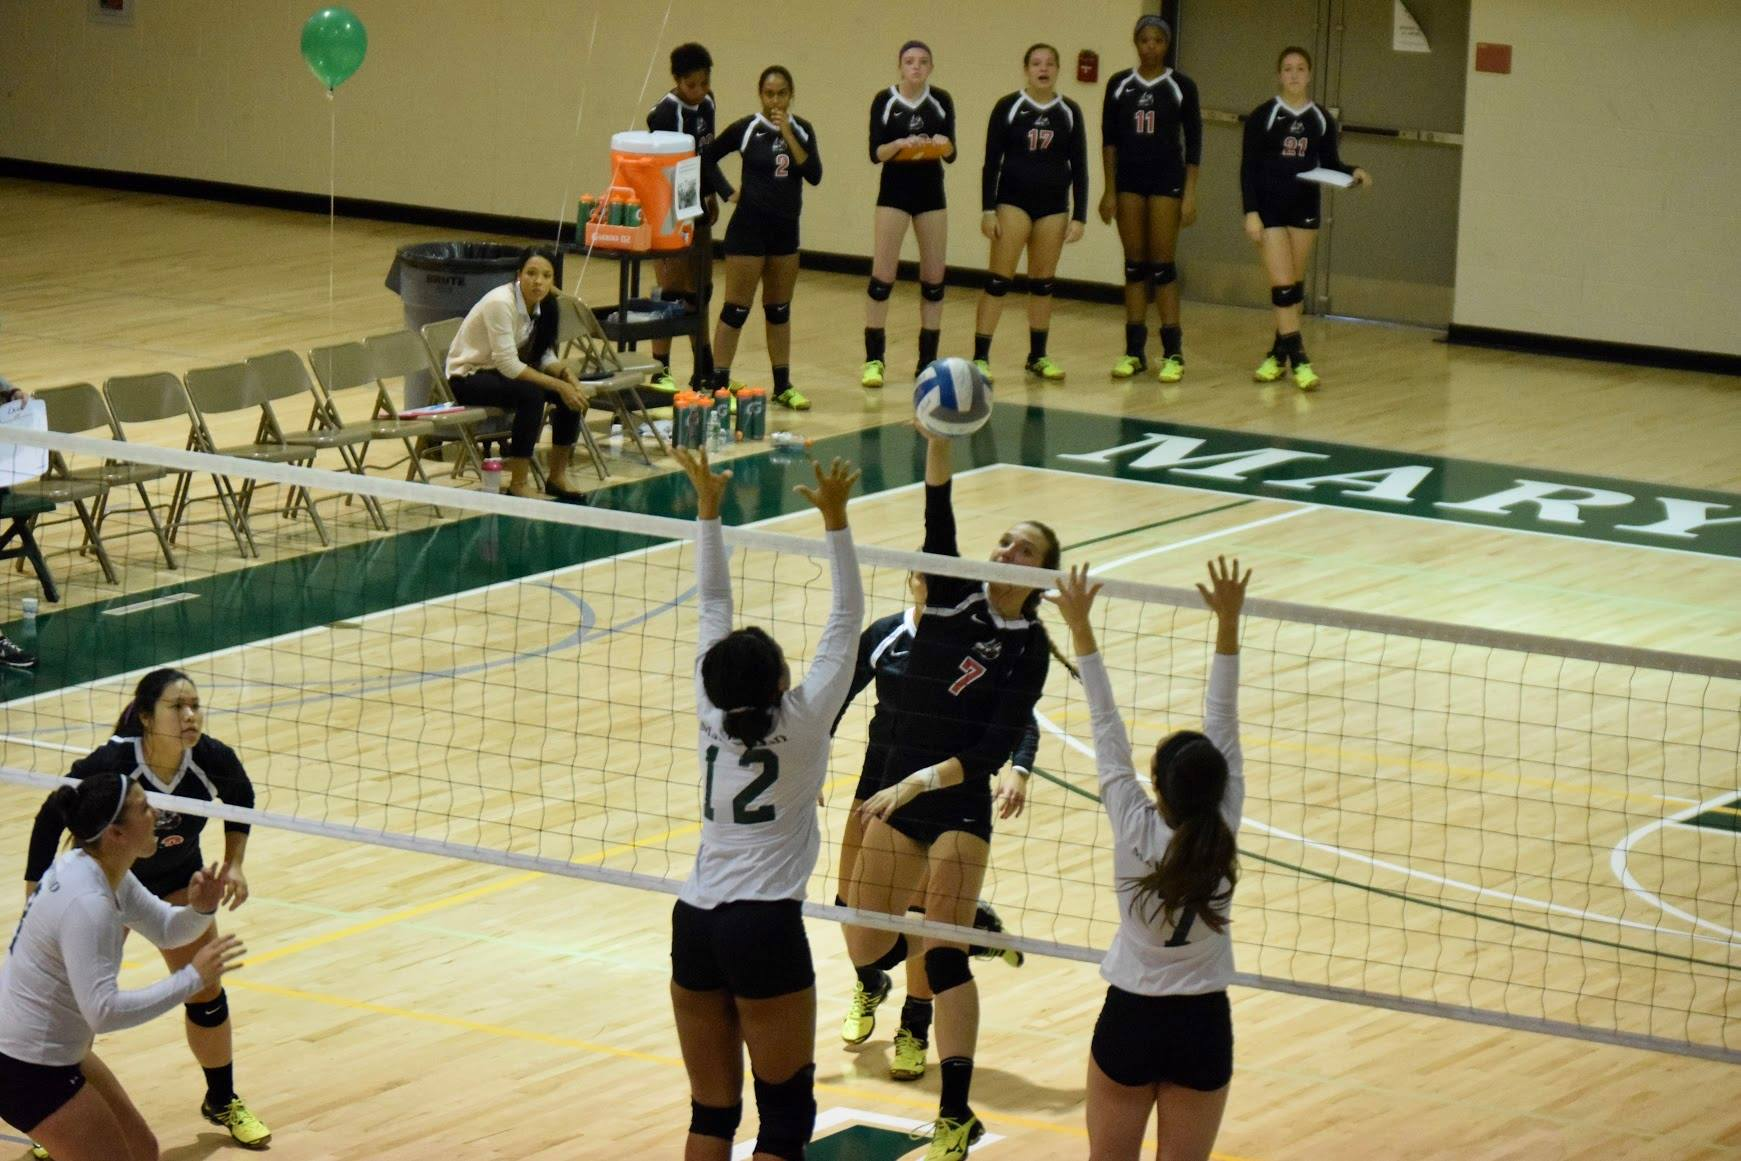 Freshman Mikayla Attwood and junior Danielle DeIulio attempt to block a spike from the Valiant's Kerry Mackey